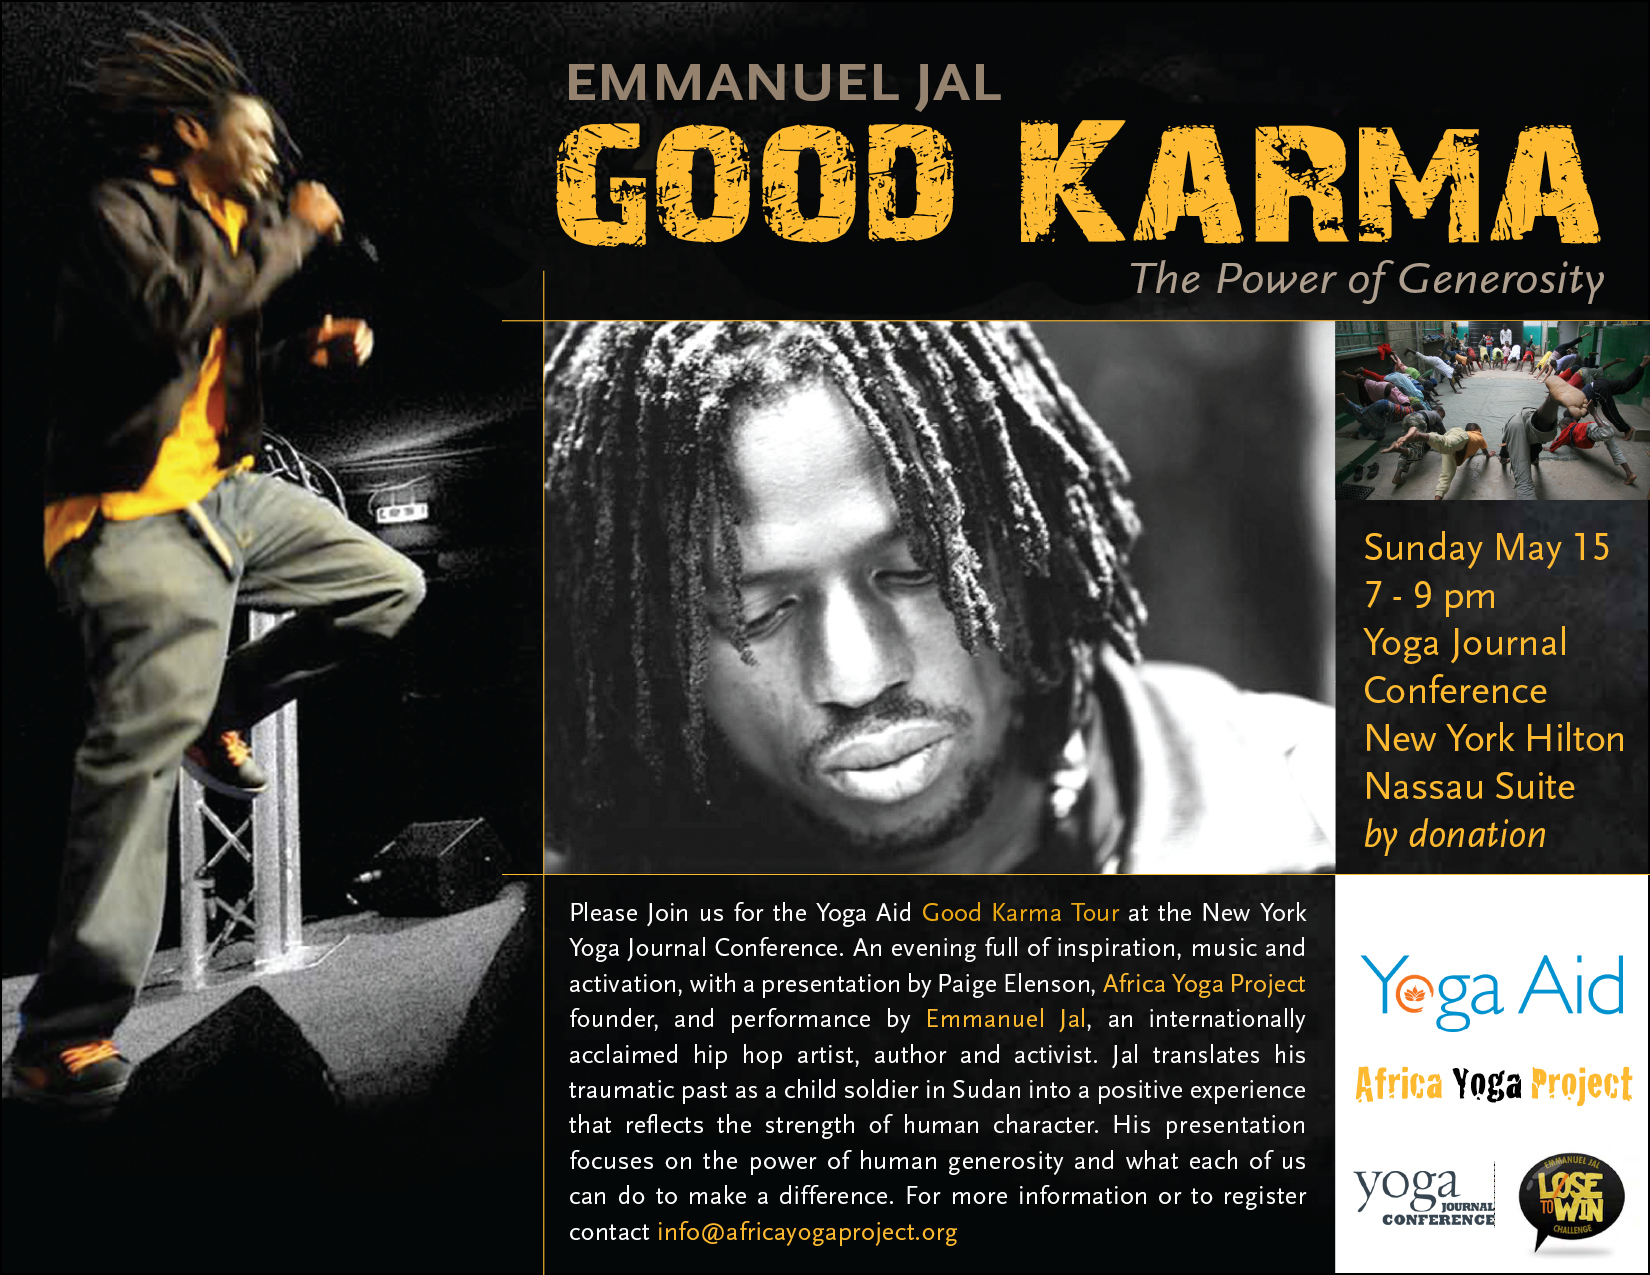 emmanuel jal youtubeemmanuel jal gua, emmanuel jal - kuar, emmanuel jal baai, emmanuel jal kuar lyrics, emmanuel jal, emmanuel jal warchild, emmanuel jal biography, emmanuel jal youtube, emmanuel jal lyrics, emmanuel jal see me mama, emmanuel jal we fall, emmanuel jal emma lyrics, emmanuel jal songs, emmanuel jal we fall lyrics, emmanuel jal warchild lyrics, emmanuel jal wiki, emmanuel jal movie, emmanuel jal the music of a war child, emmanuel jal baai lyrics, emmanuel jal warchild movie